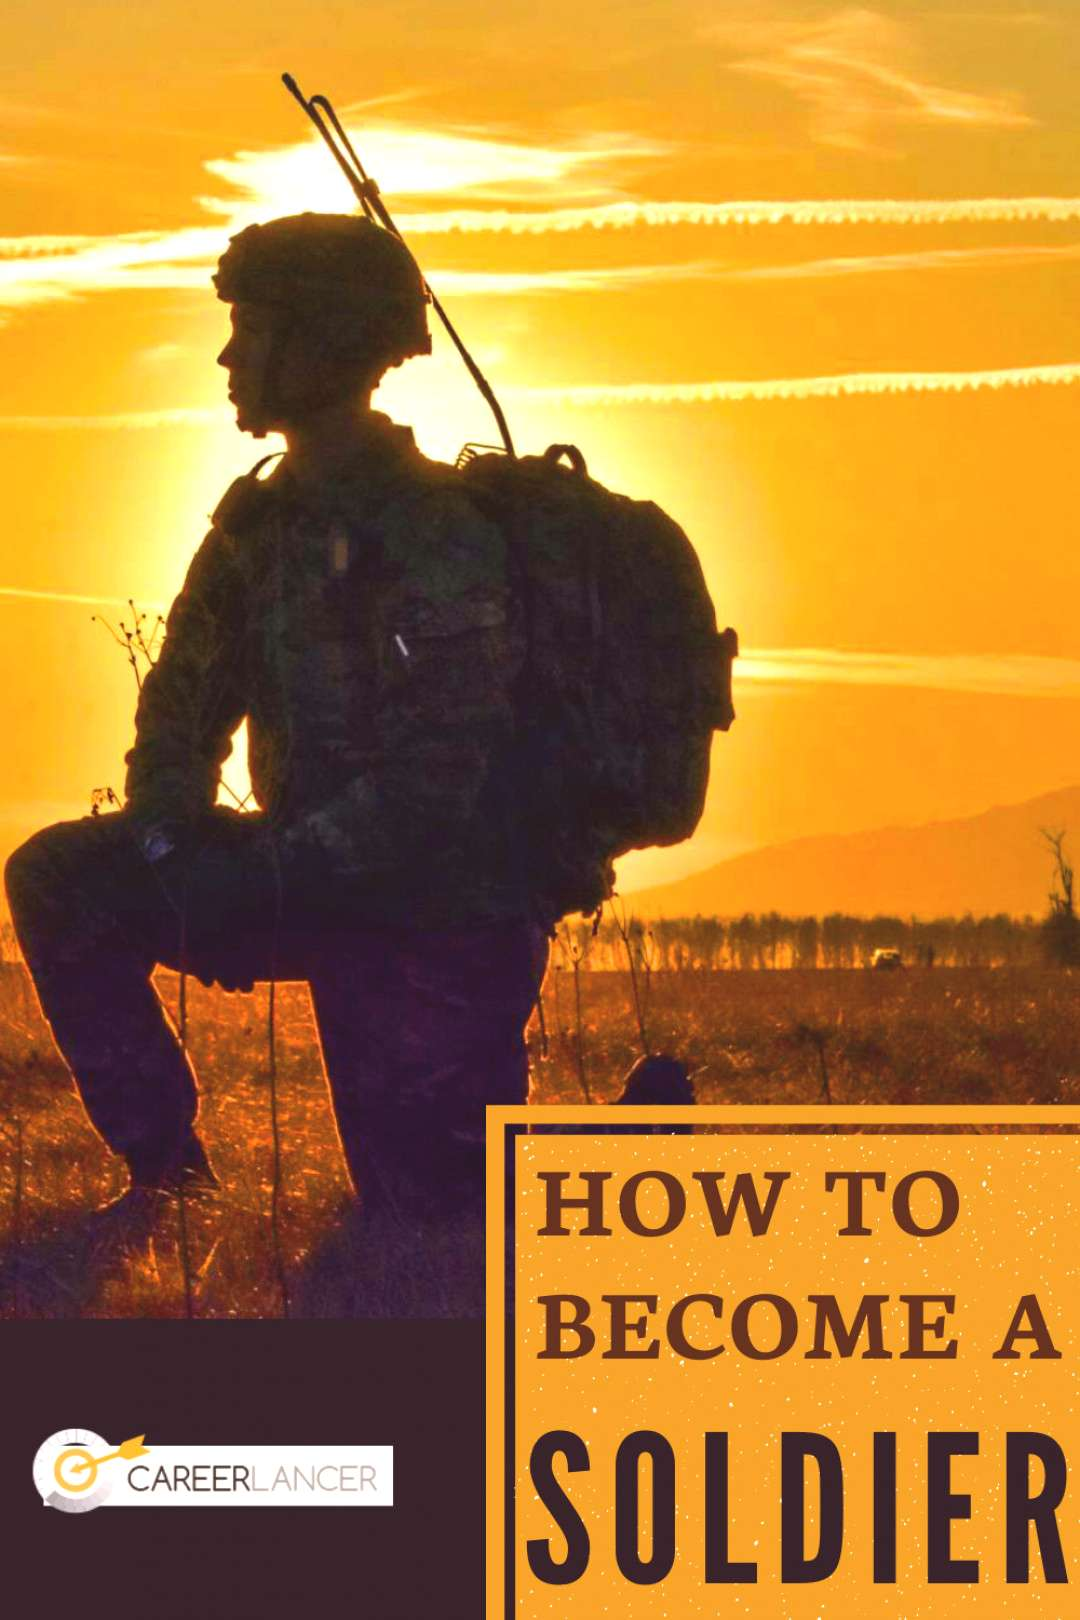 How To Become A Soldier - Careerlancer Soldiers are members of the U.S. Army who defend democracy